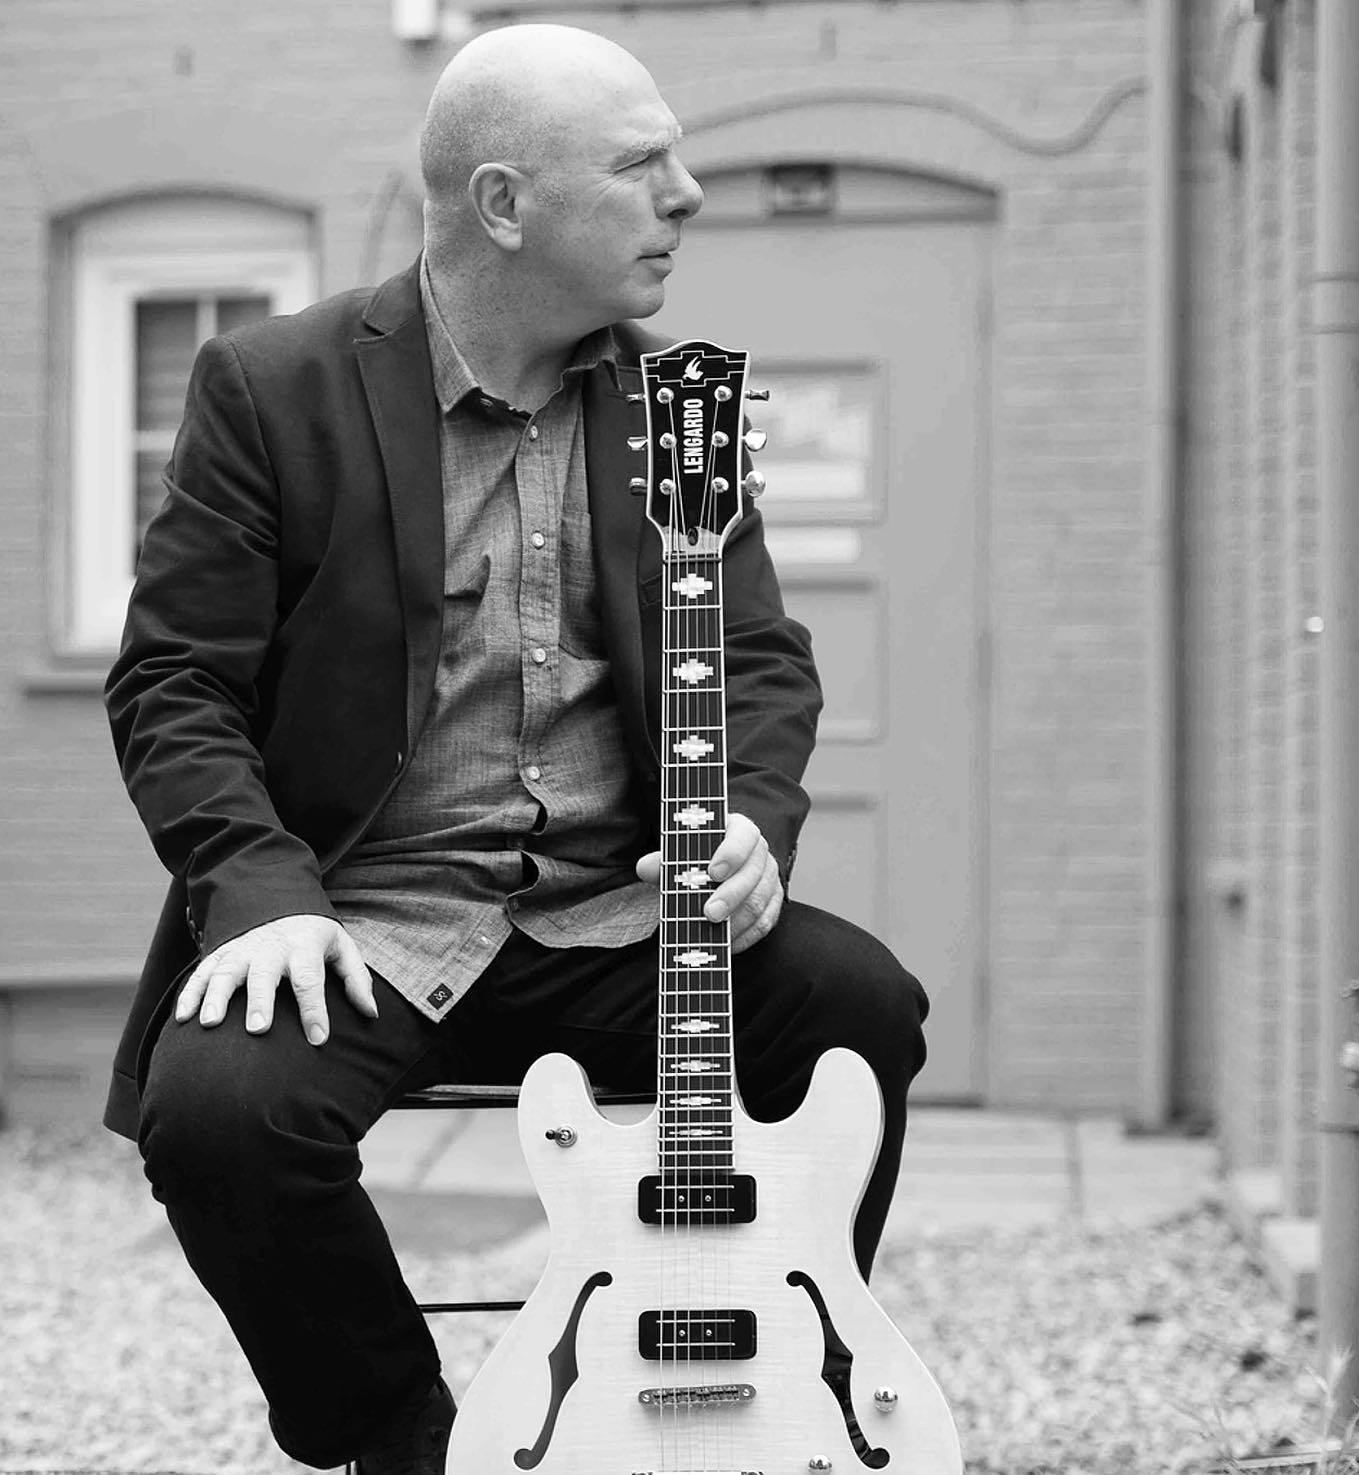 We are so excited to welcome Guitarist Carl Orr (Billy Cobham) for live Jazz at the Gatehouse this sunday and next!  Carl Orr has worked for years with Jazz Fusion Legendary Drummer Billy Cobham & also many times at Ronnie Scotts Club.   He will be accompanied by with Miles Danso on Bass & Drummer Ollie Usiskin.  7.30 - 10pm… we recommend booking to avoid disappointment!  #jazz #music #jazzmusic #hiphop #dance #guitar #blues #soul #funk #musician #rock #vinyl #piano #livemusic #northlondon #highgate #hampstead